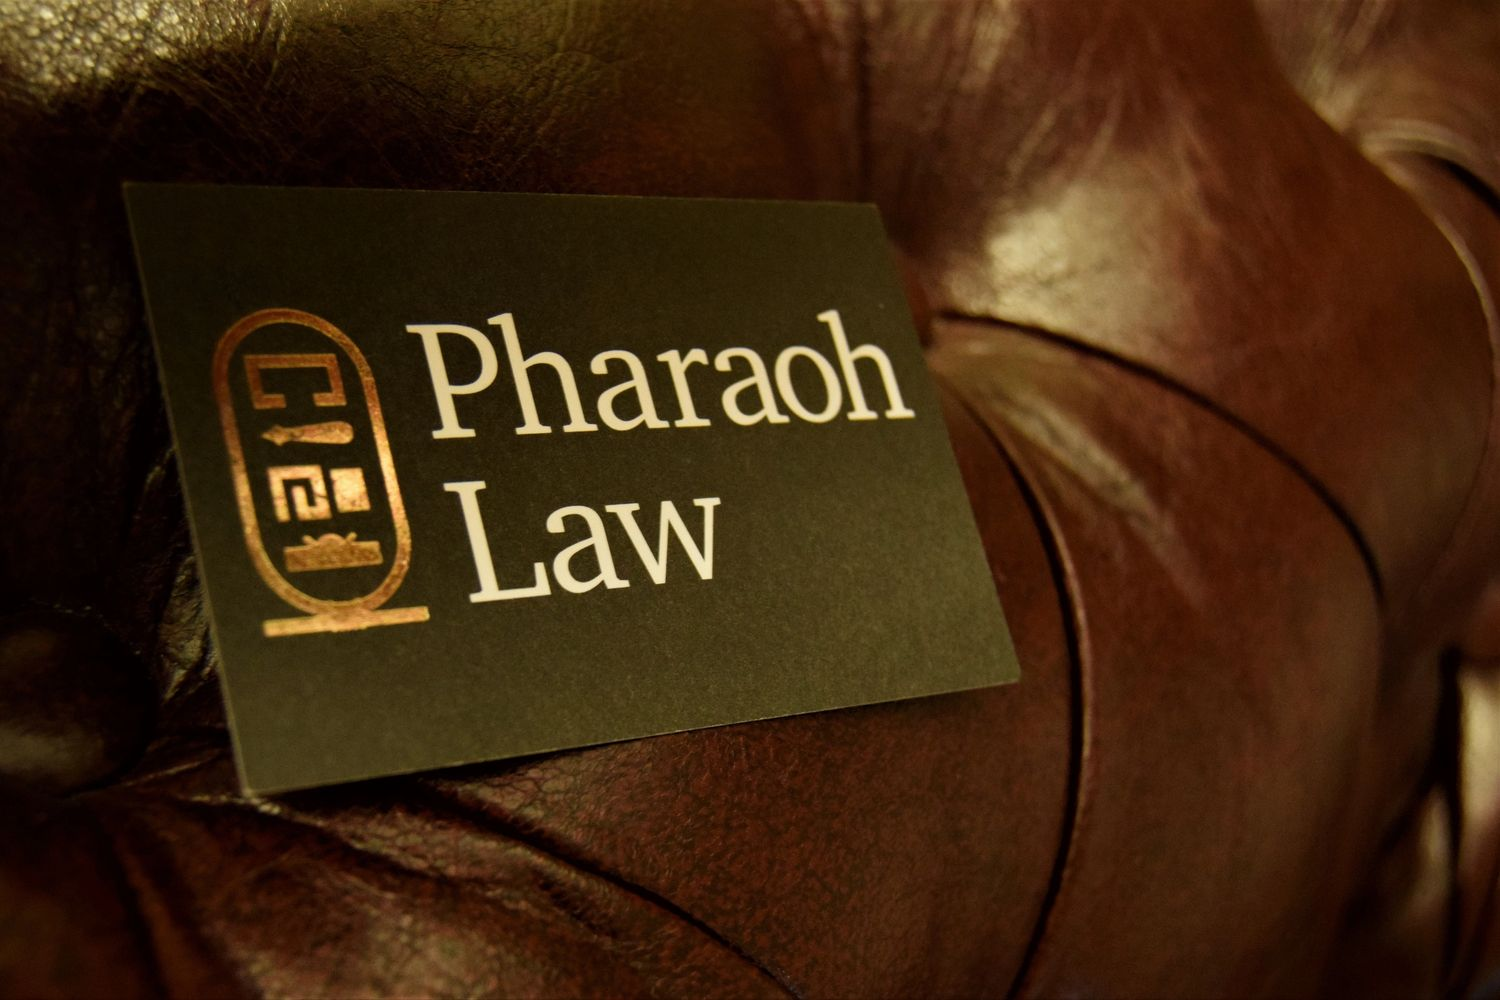 pharaoh law  employment law covid 19 top rated solicitor dispute wills